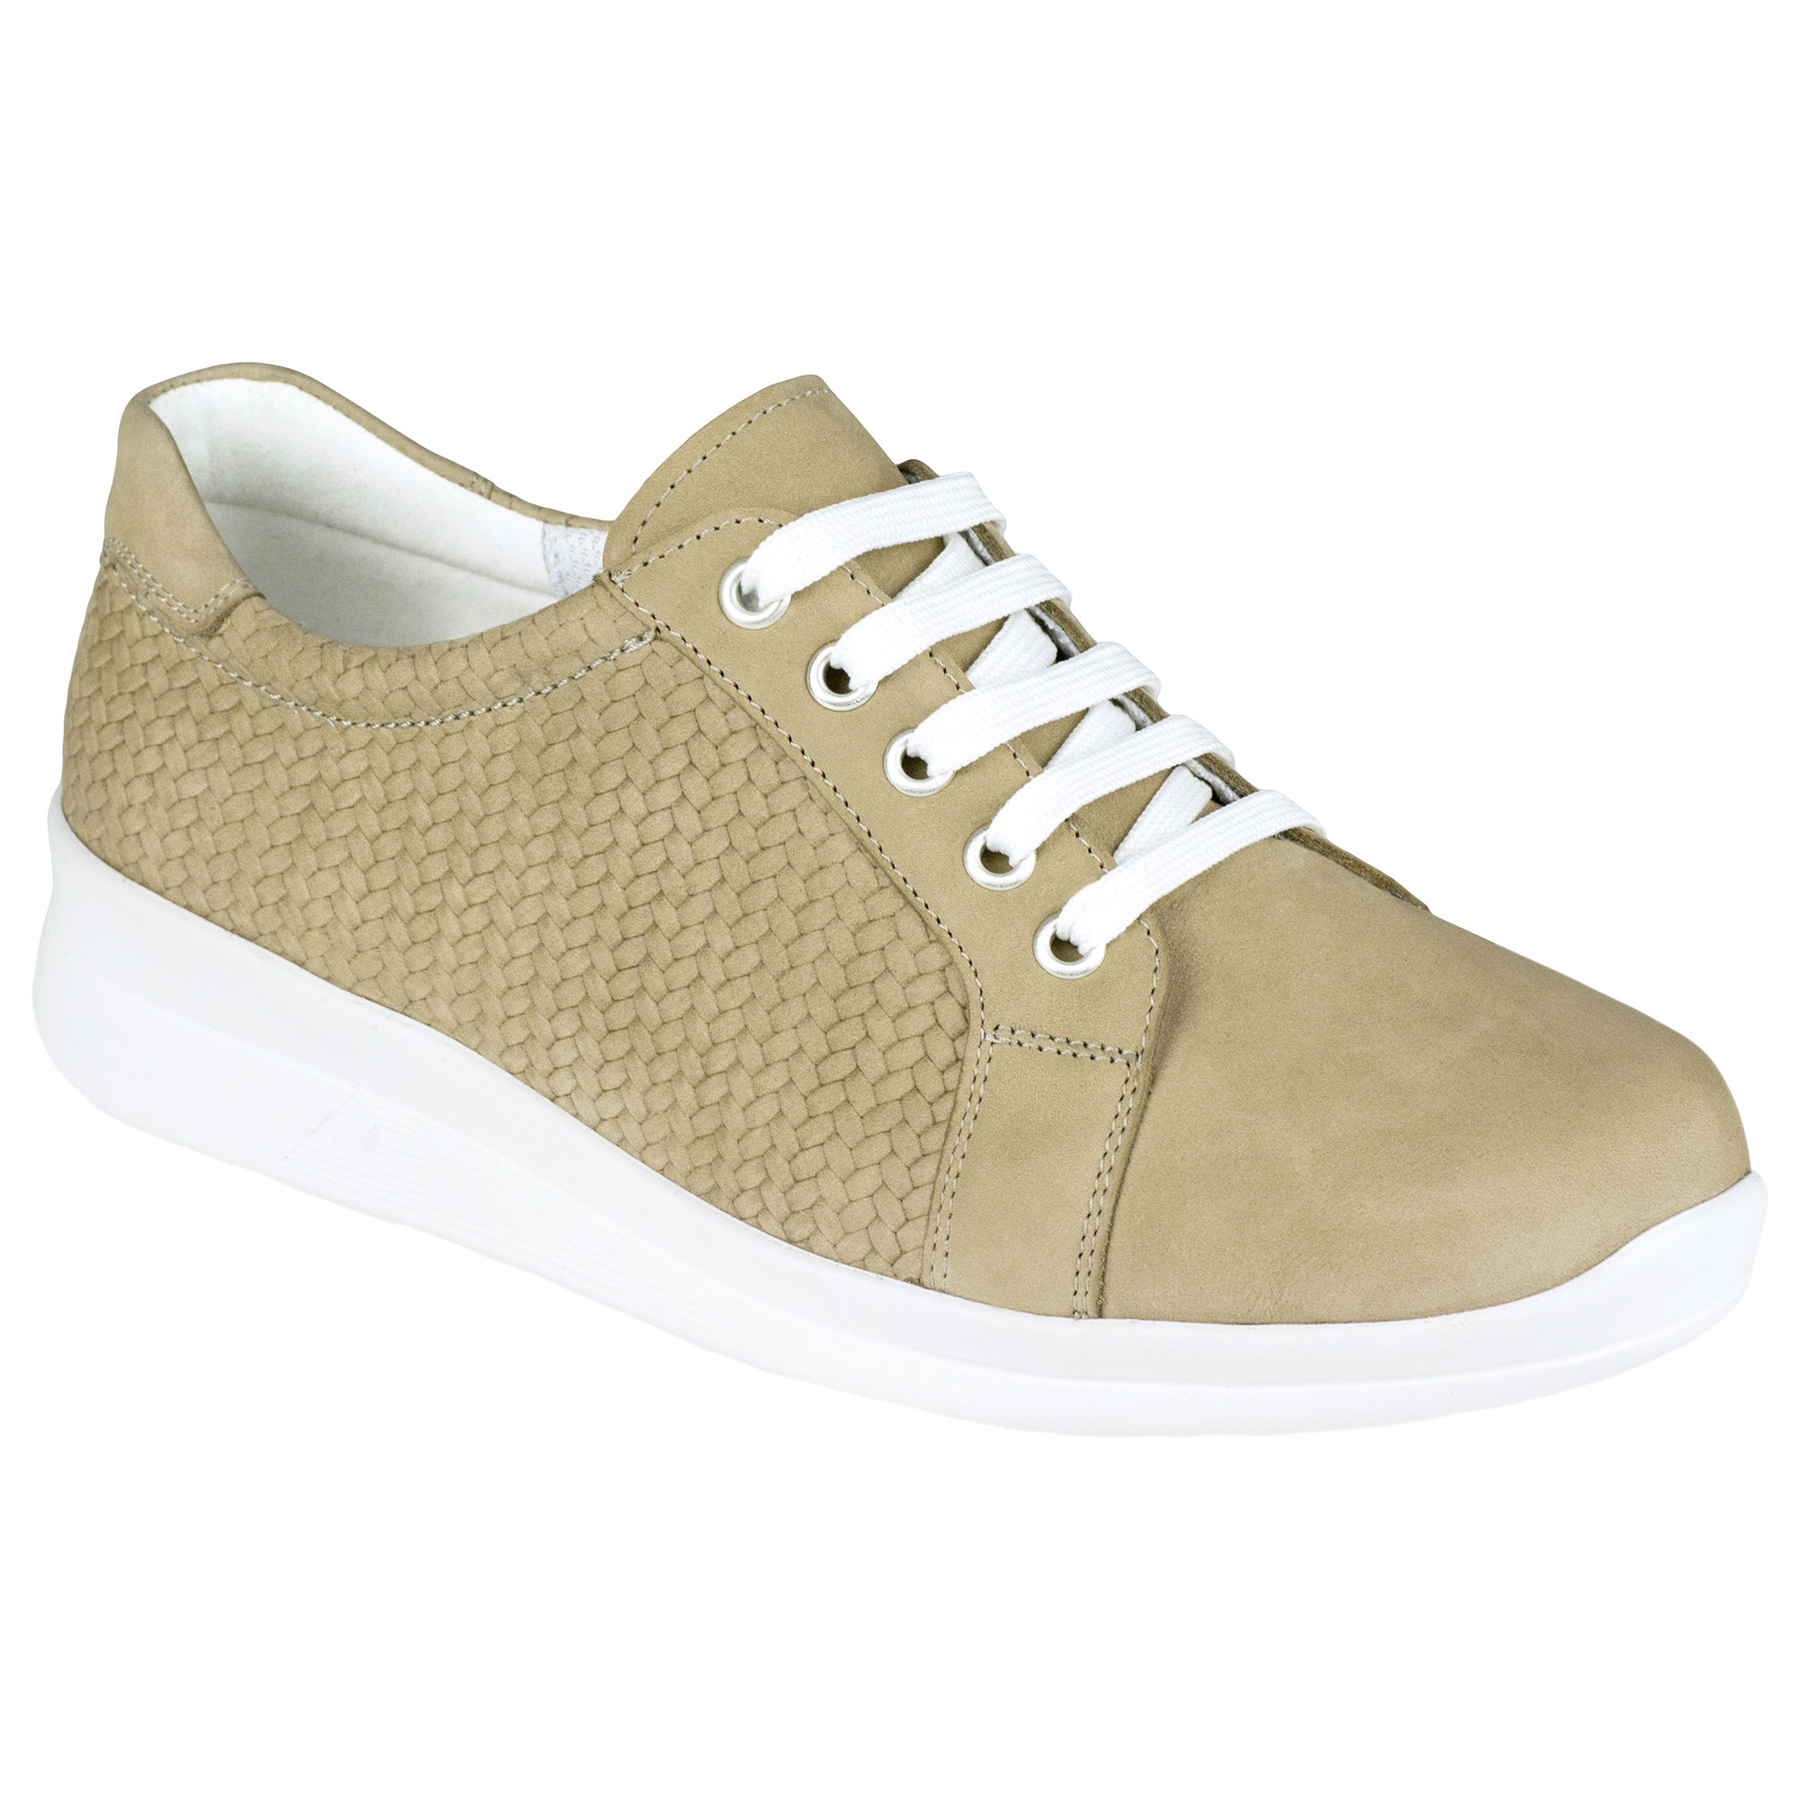 new product 65fa6 89207 Bequemschuhe